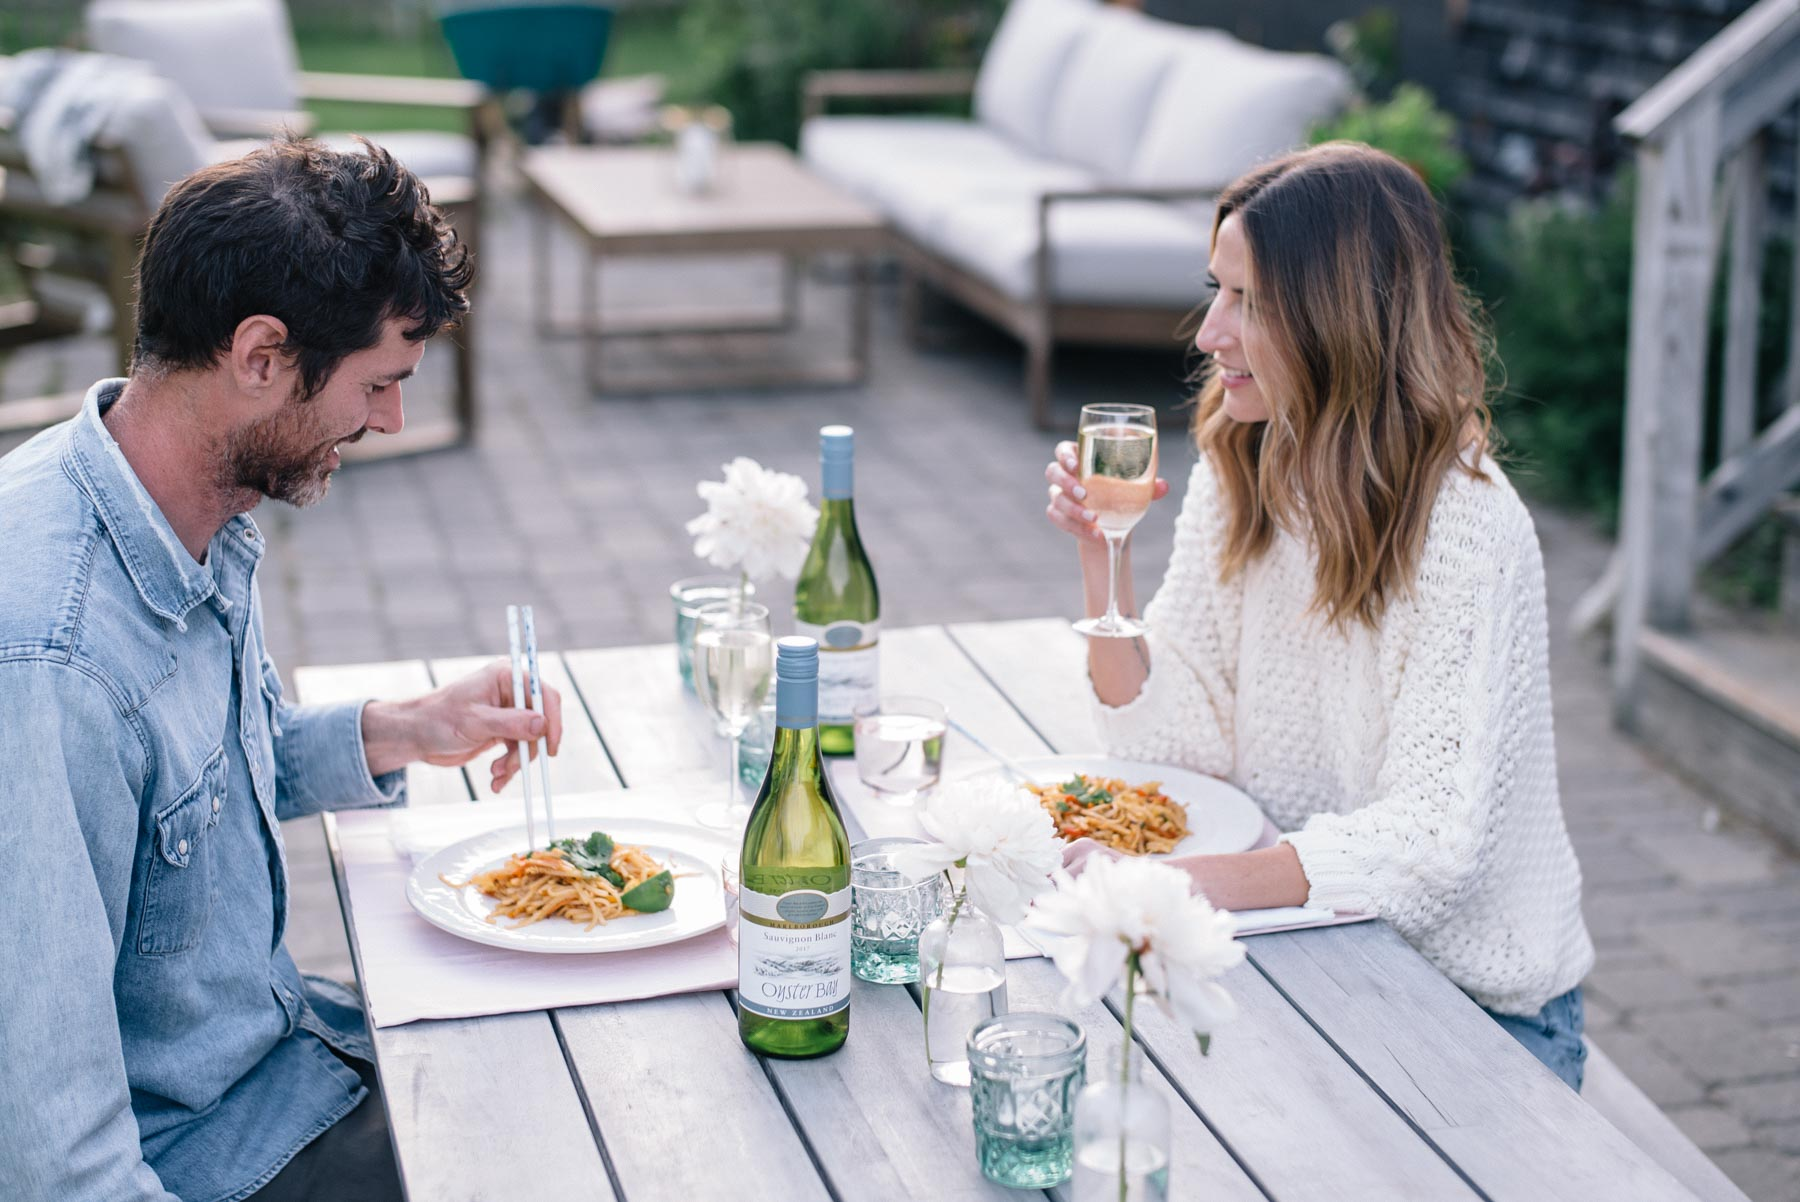 Jess Ann Kirby prefers an at-home date night in the summer with a dinner on the patio and chilled Oyster Bay sauvignon blanc